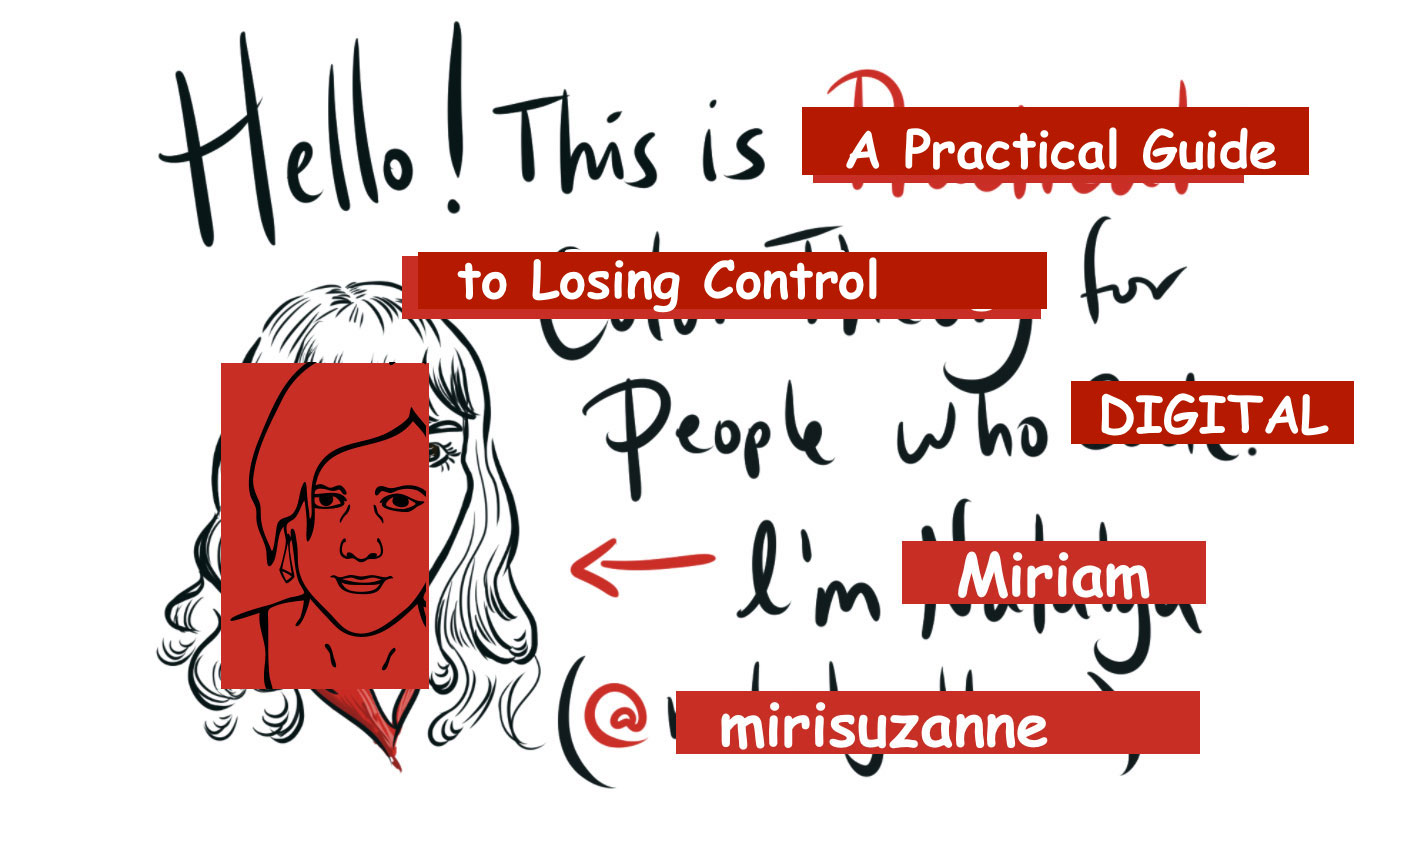 Hello this is a Practical Guide to Losing Control for People who DIGITAL